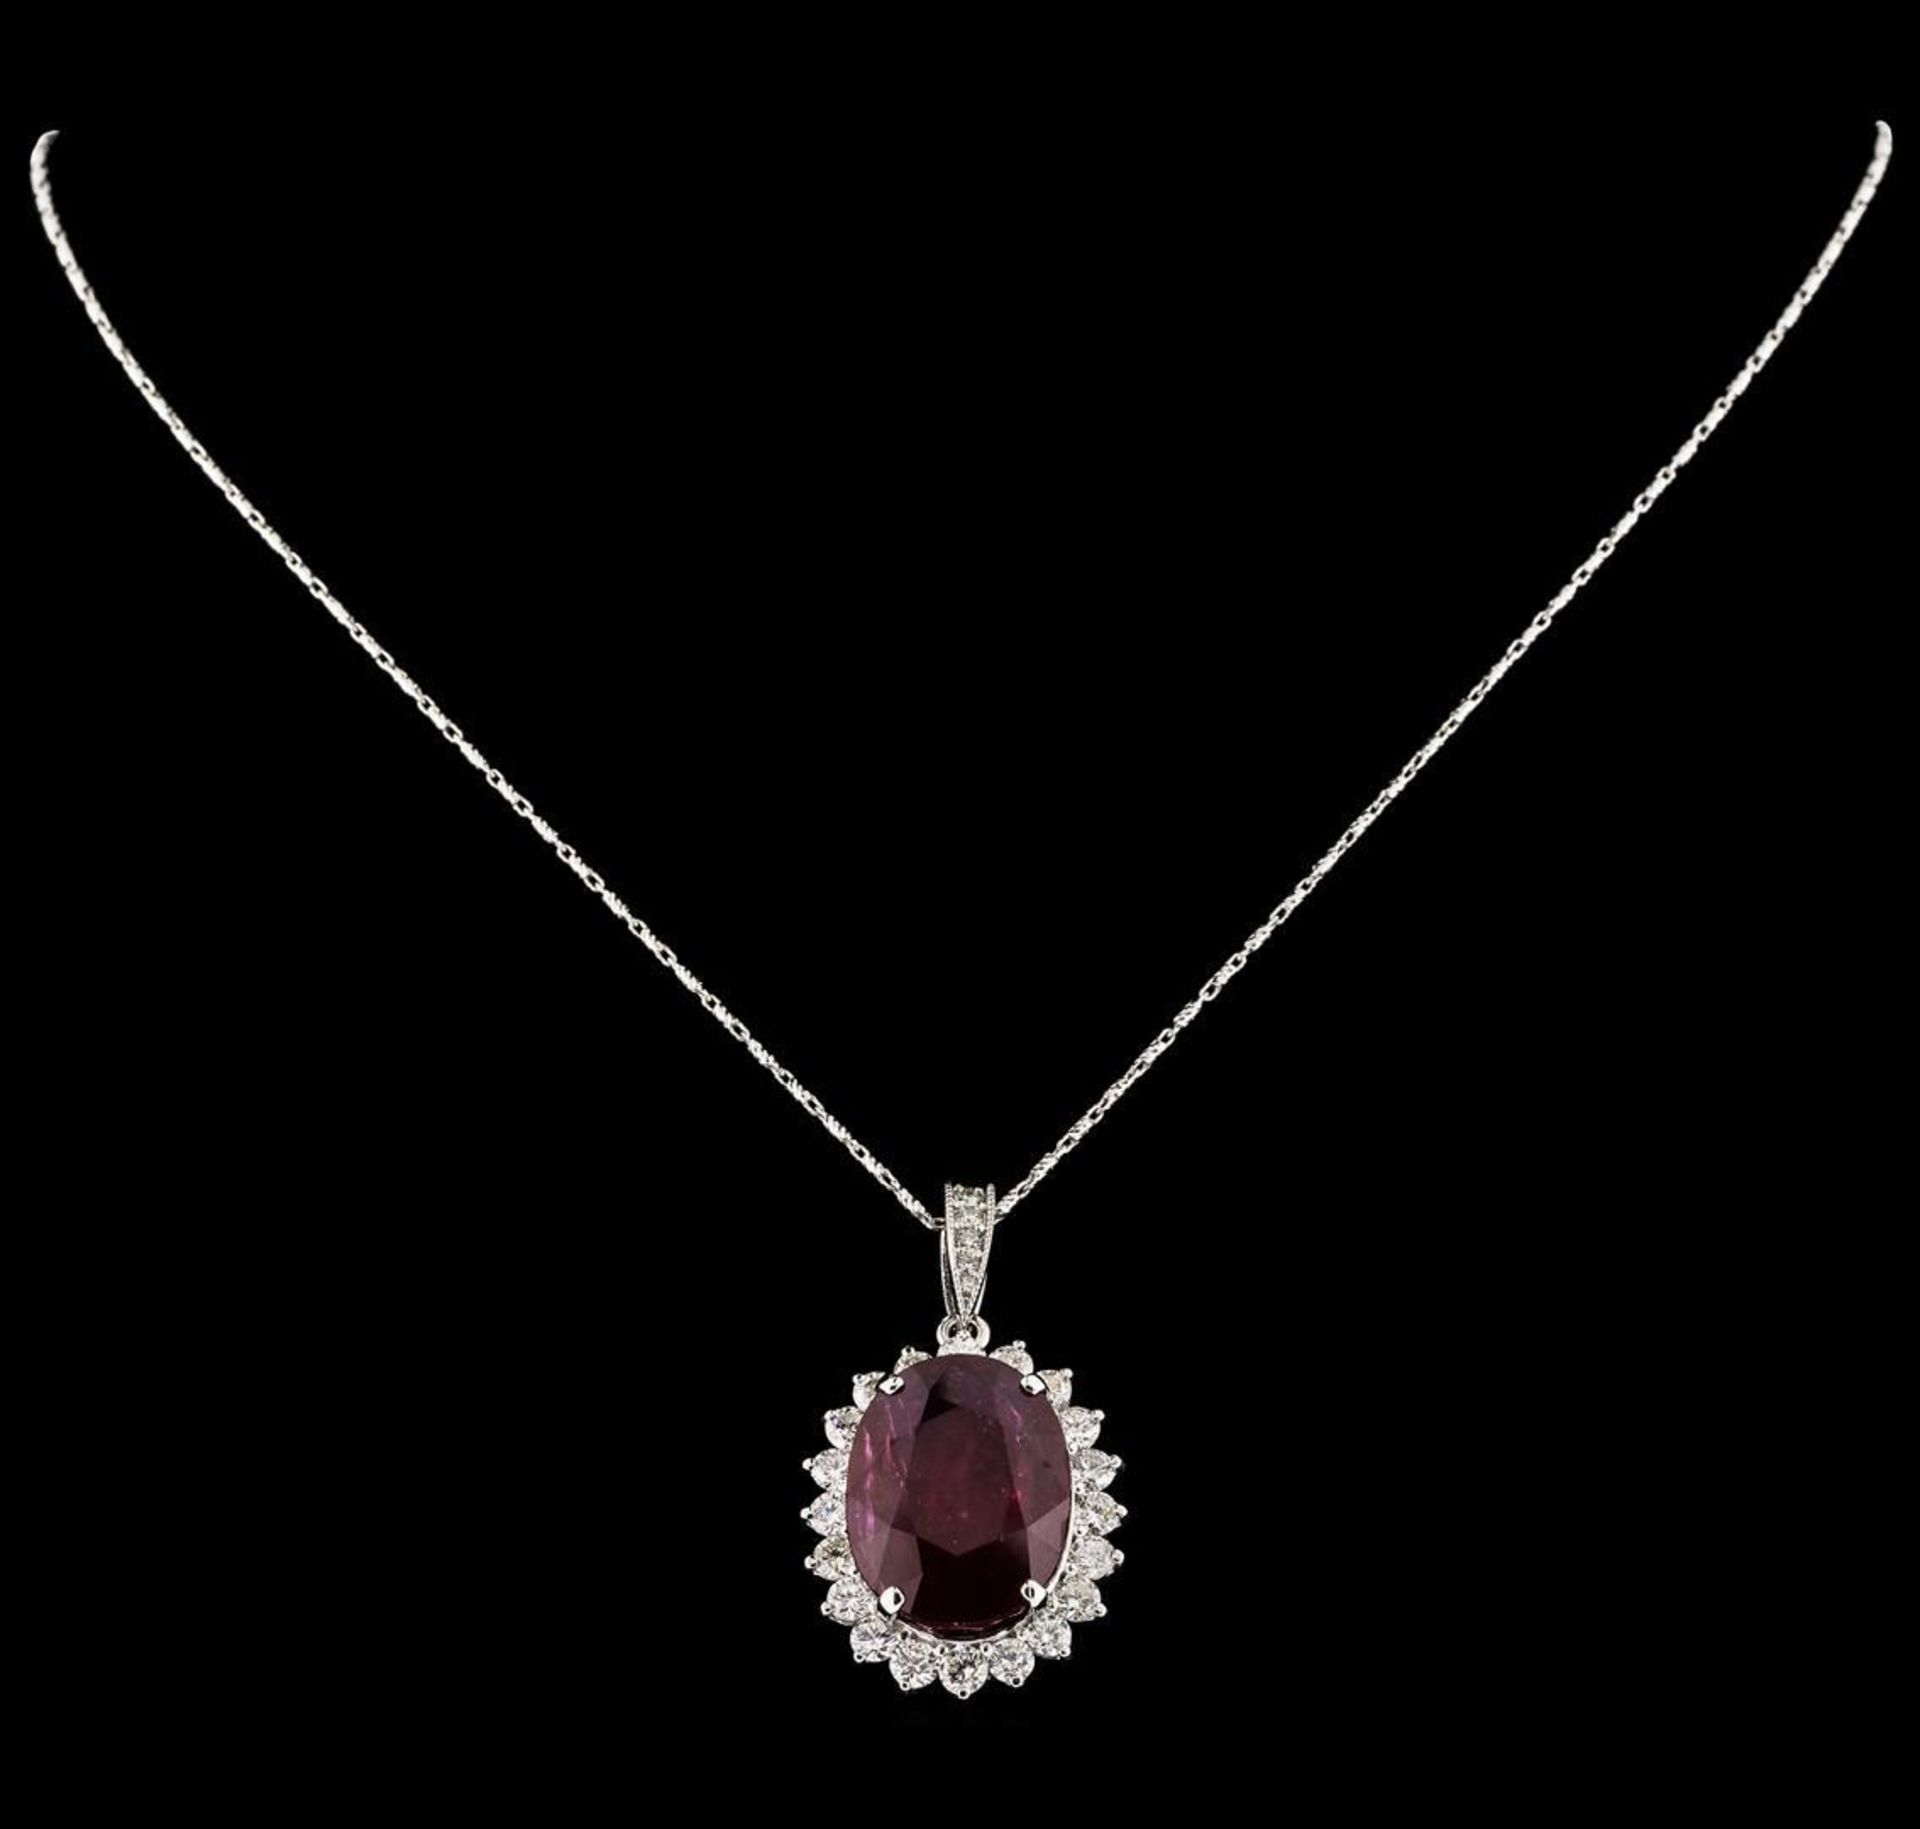 18.81 ctw Ruby and Diamond Pendant With Chain - 14KT White Gold